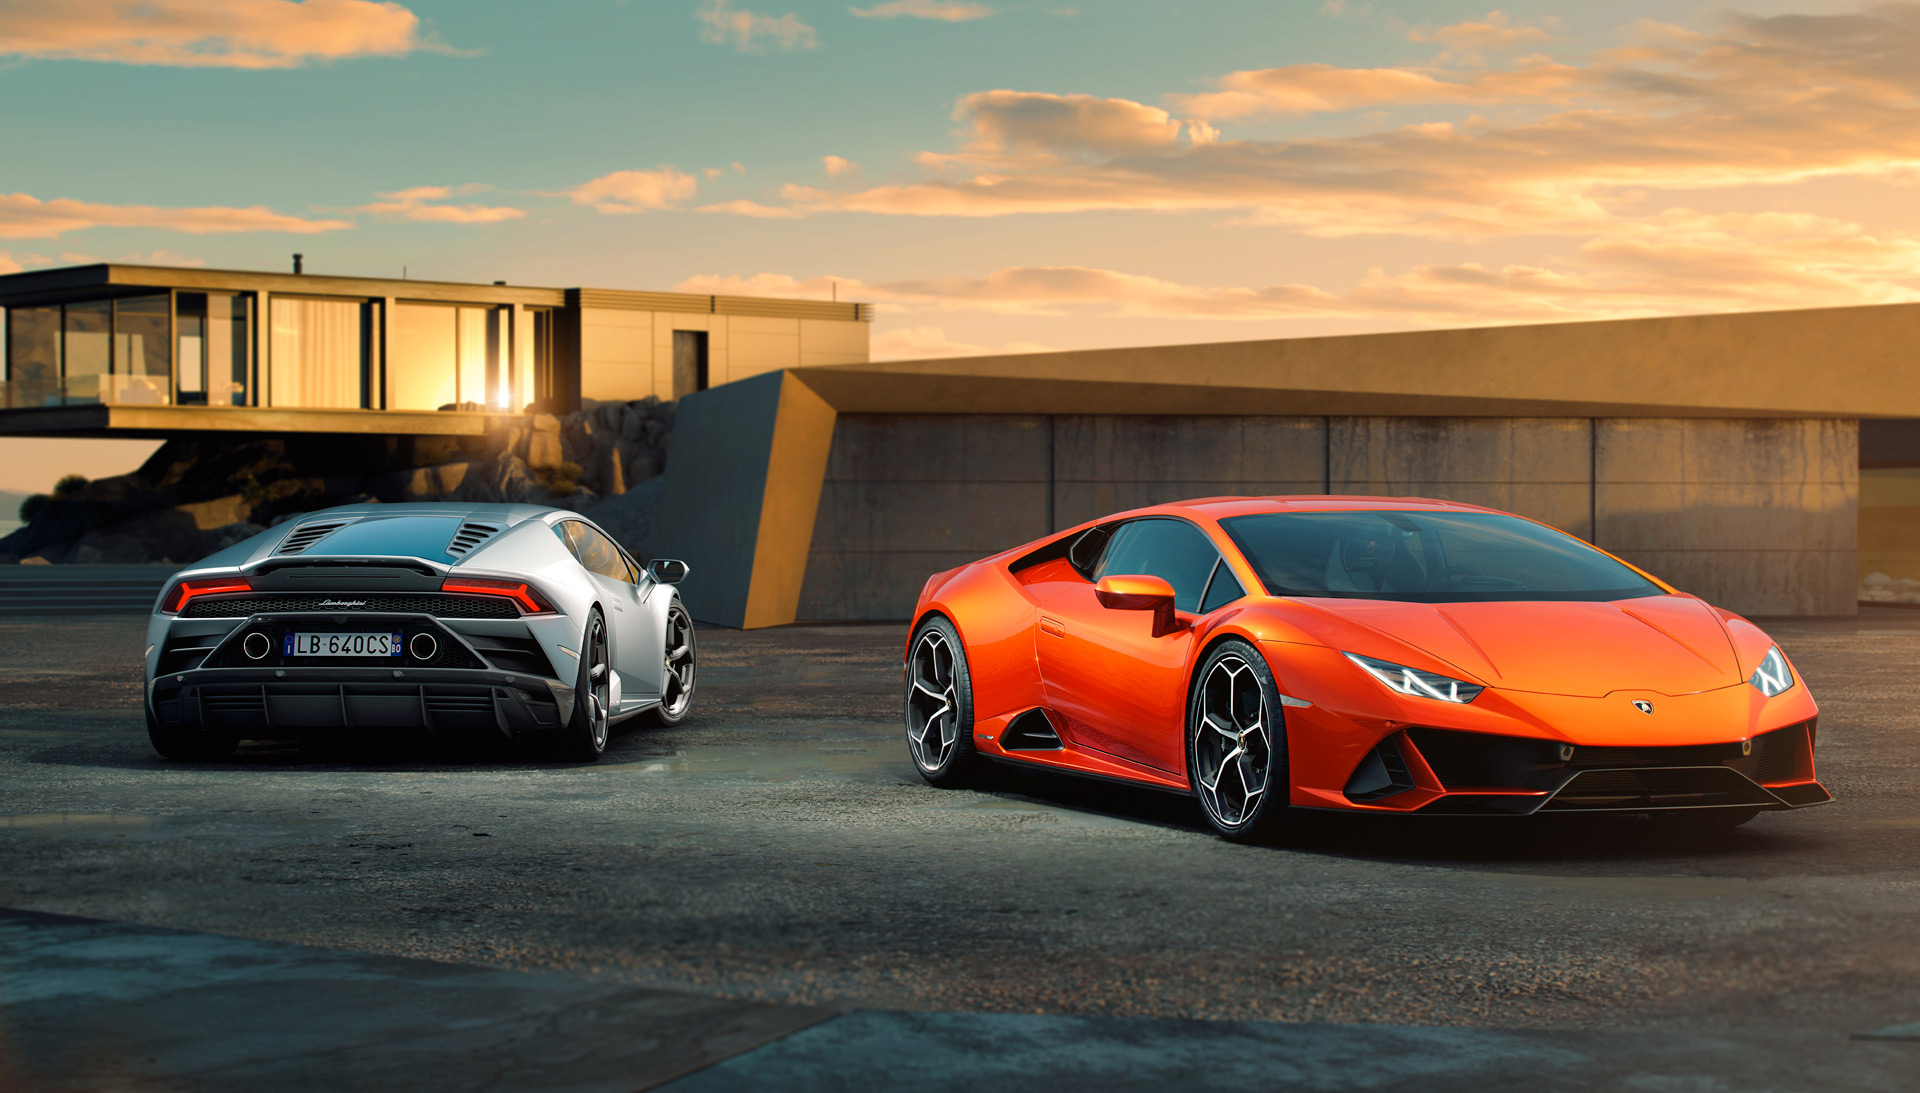 Lamborghini is reverting to real names